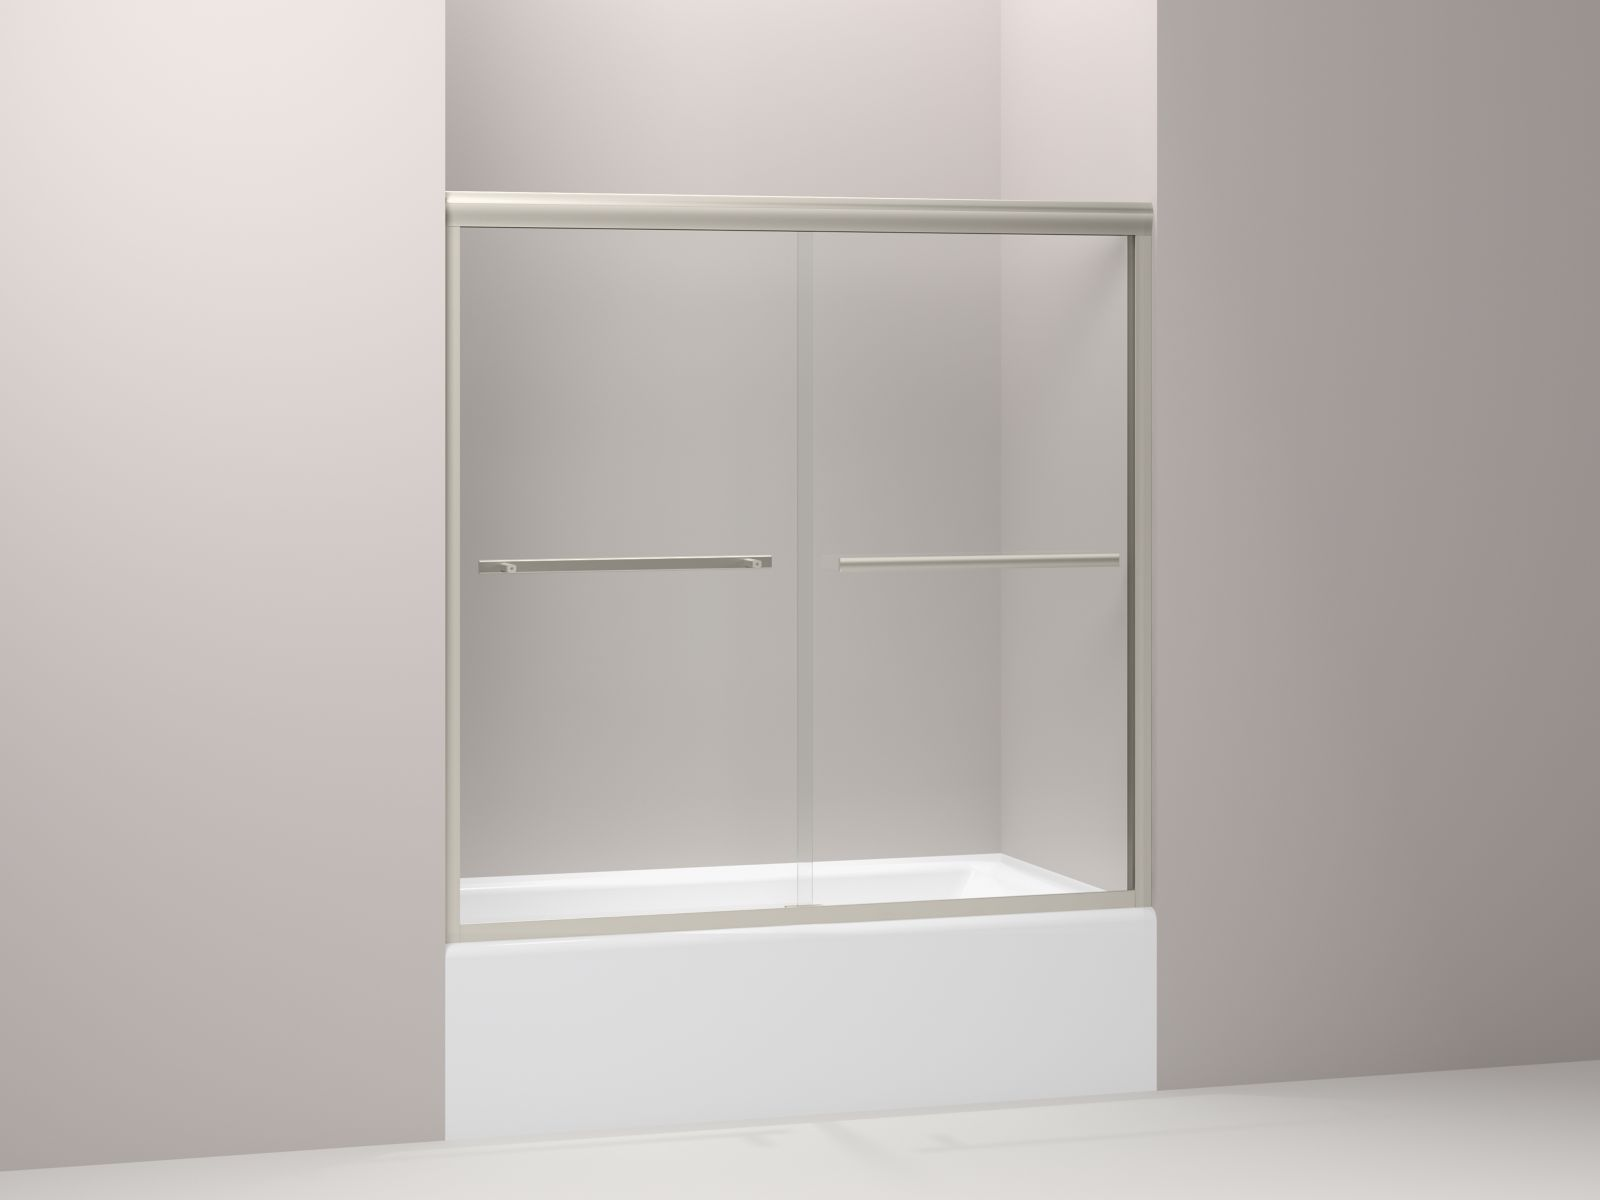 "Kohler Gradient™ K-709062-L-MX sliding bath door, 58-1/16"" H x 59-5/8"" W, with 1/4"" thick Crystal Clear glass Matte Nickel"